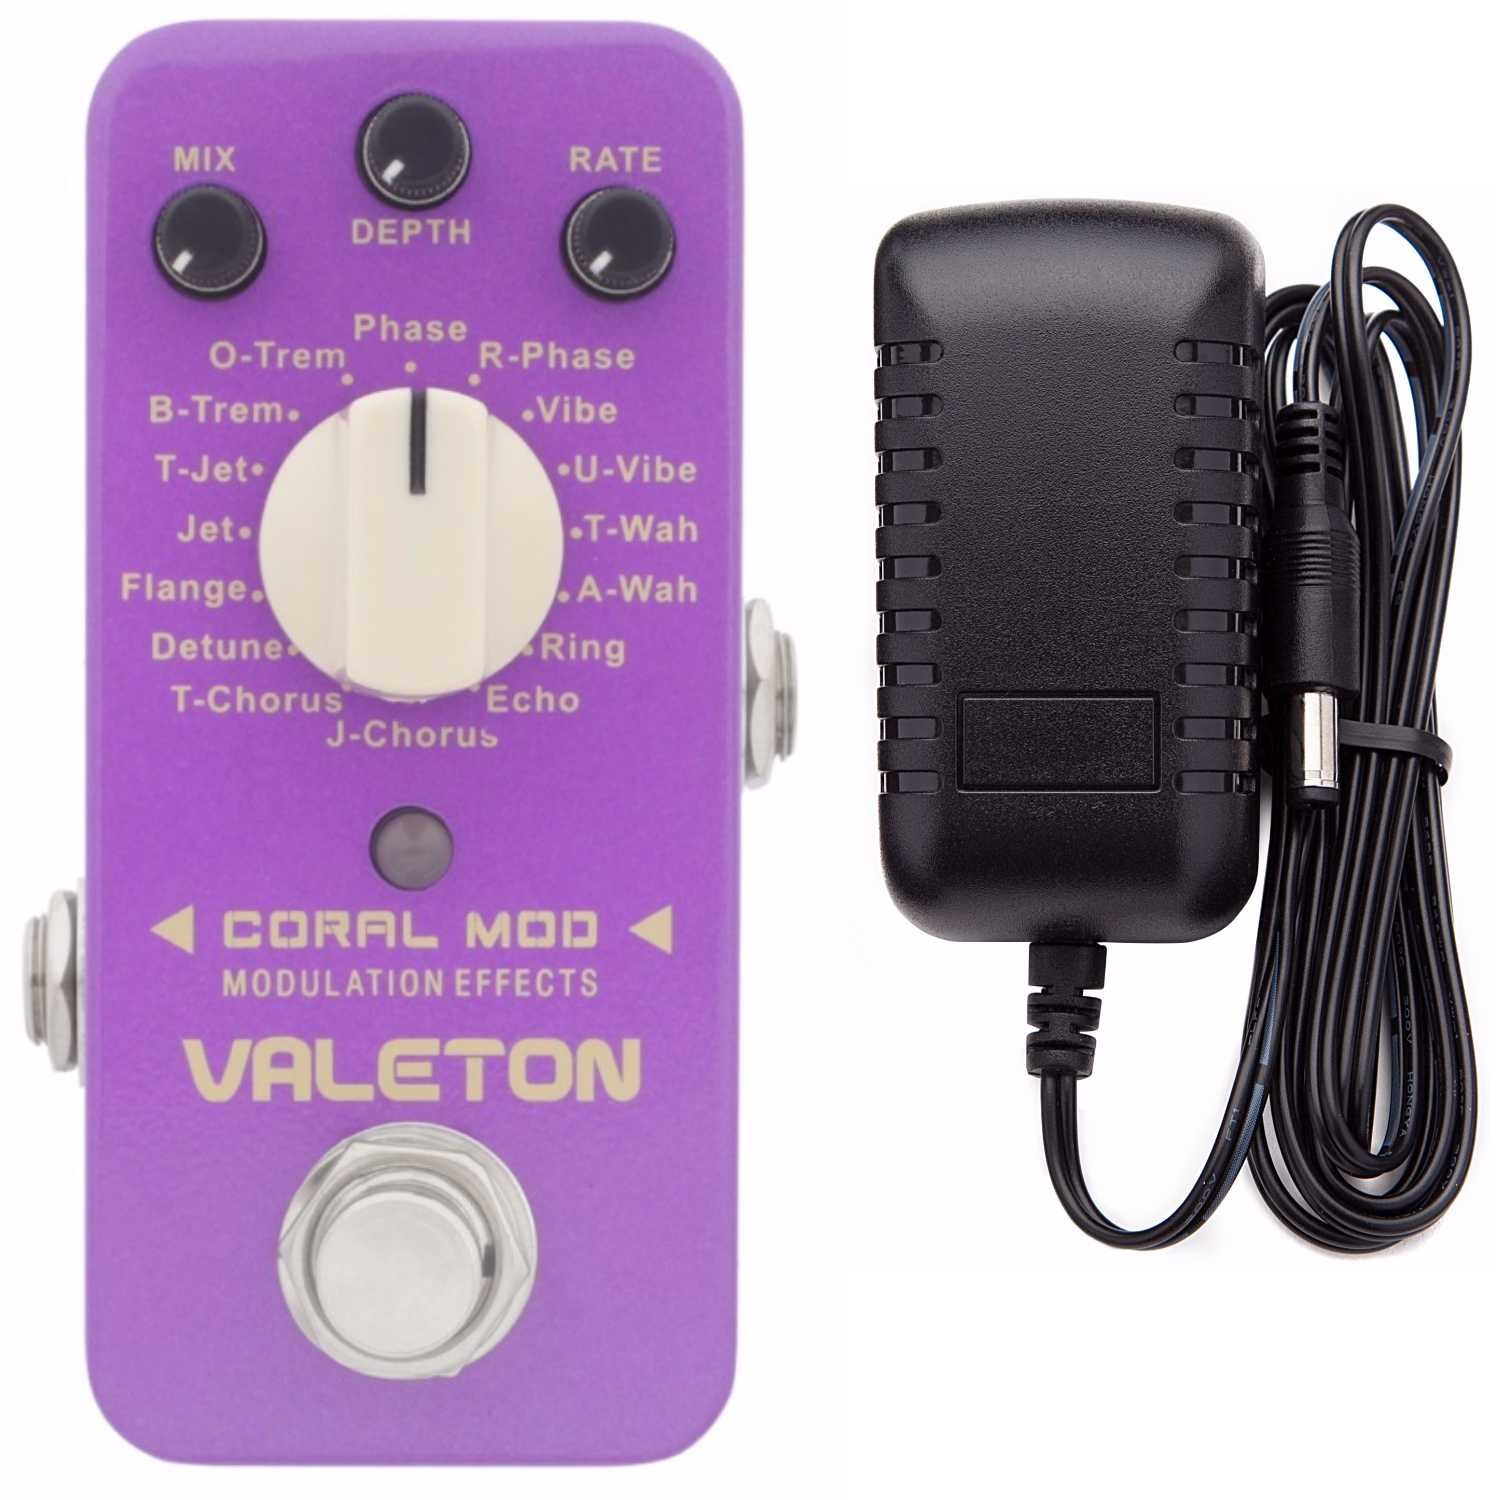 Valeton Coral Mod Digital Modulation Effects Pedal (16 Modes) Plus Valeton 9V DC 1 Amp Power Supply